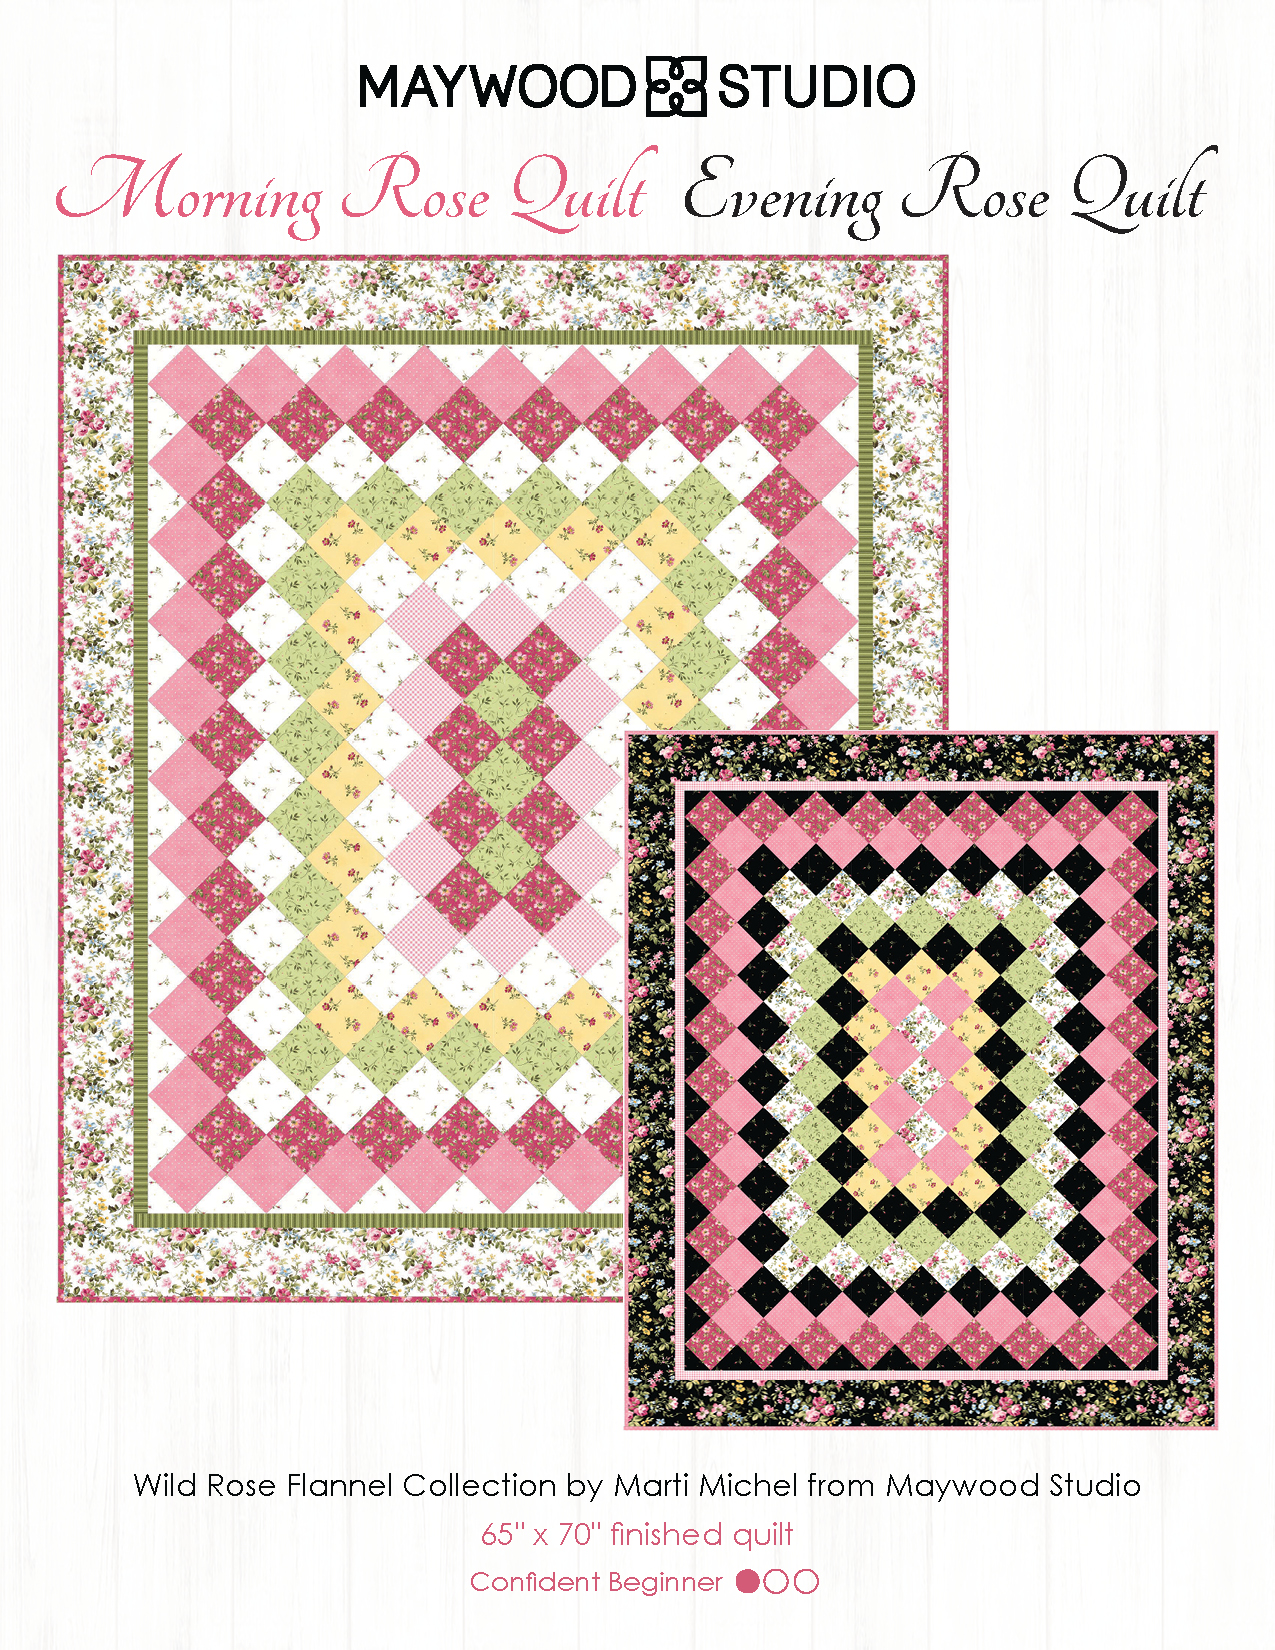 Morning Rose Quilt, Evening Rose Quilt